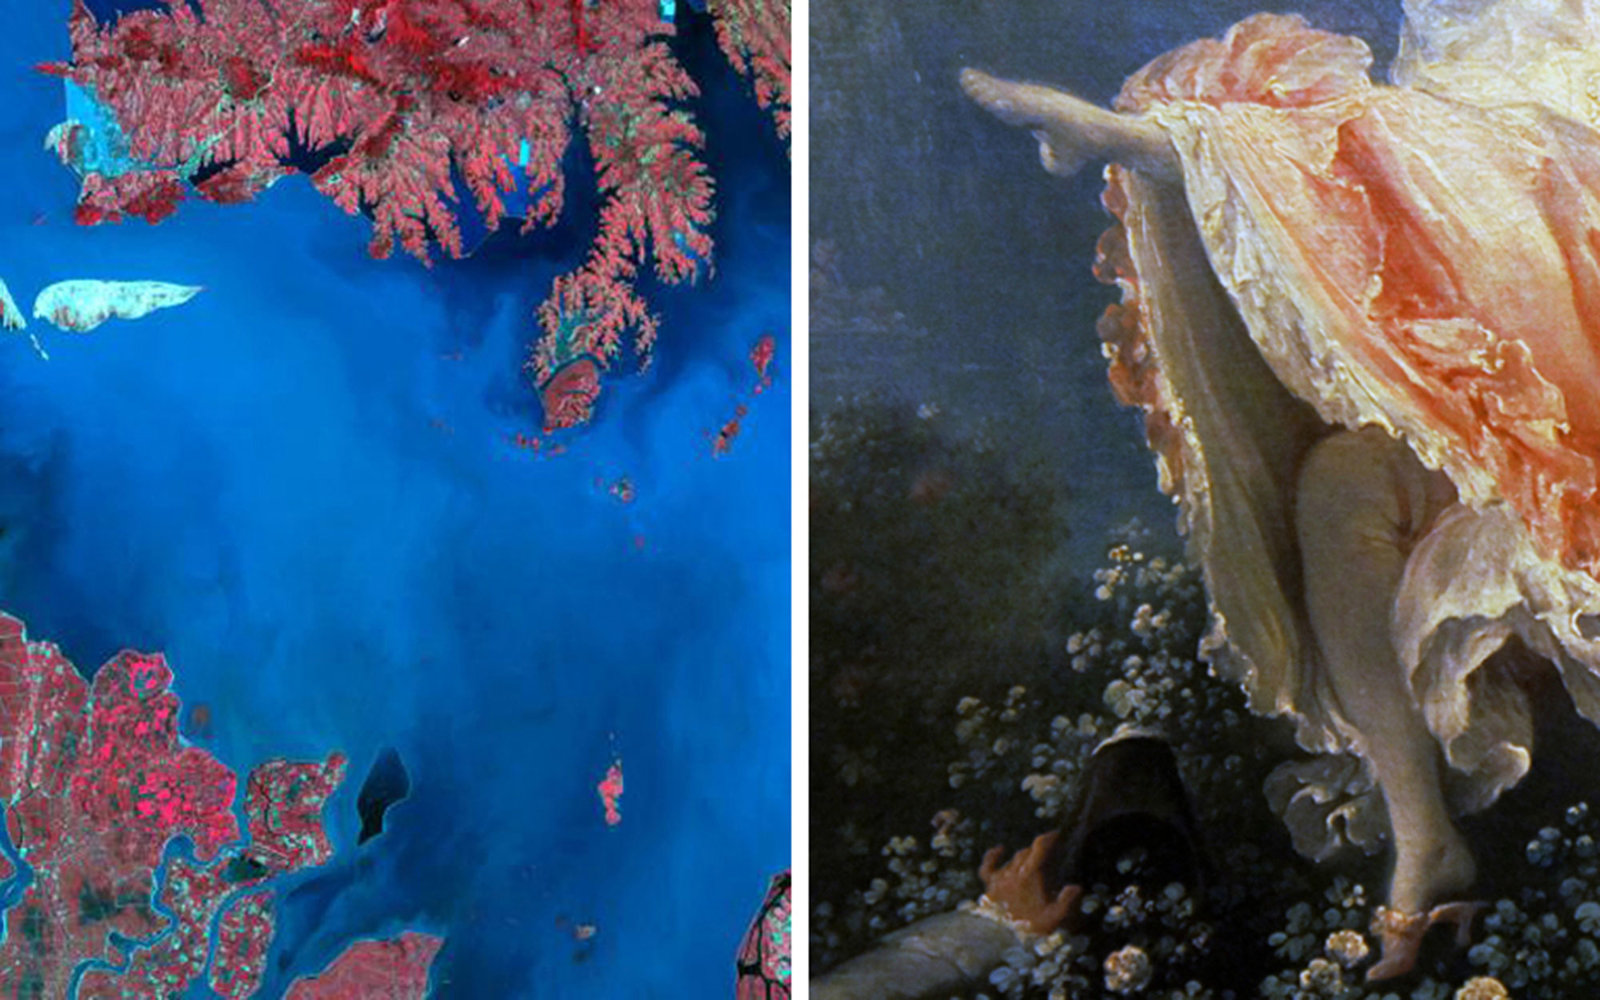 Pictured left: China's Poyang Lake on July 14, 1989; Pictured right: Jean-Honoré Fragonard, The Swing, 1767